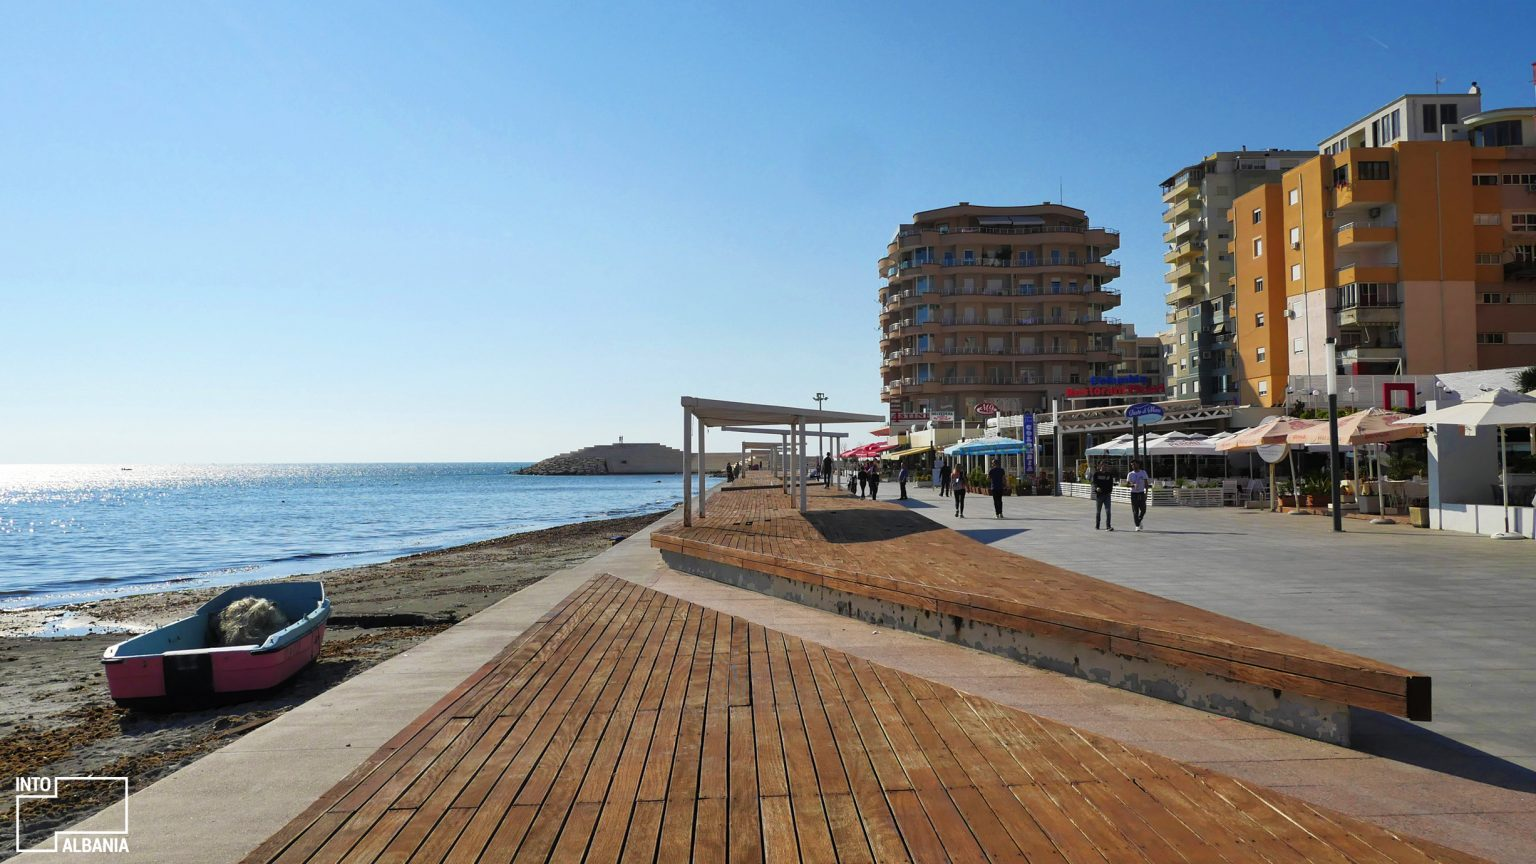 Vollga Promenade, Durrës, photo by IntoAlbania